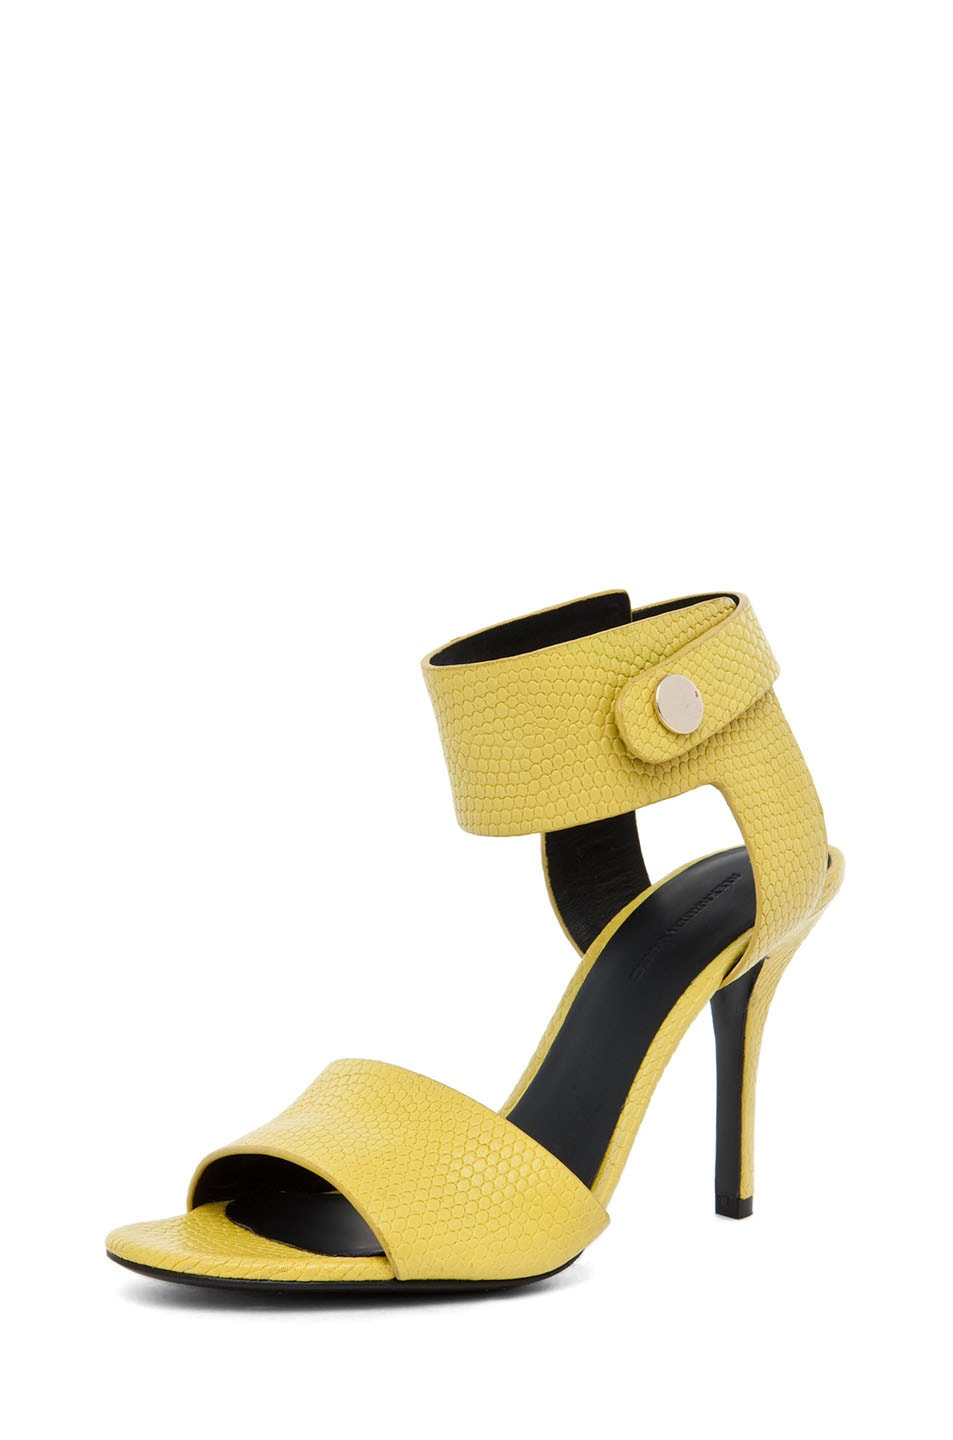 Image 2 of Alexander Wang Amber Lizard Print Sandal in Acid